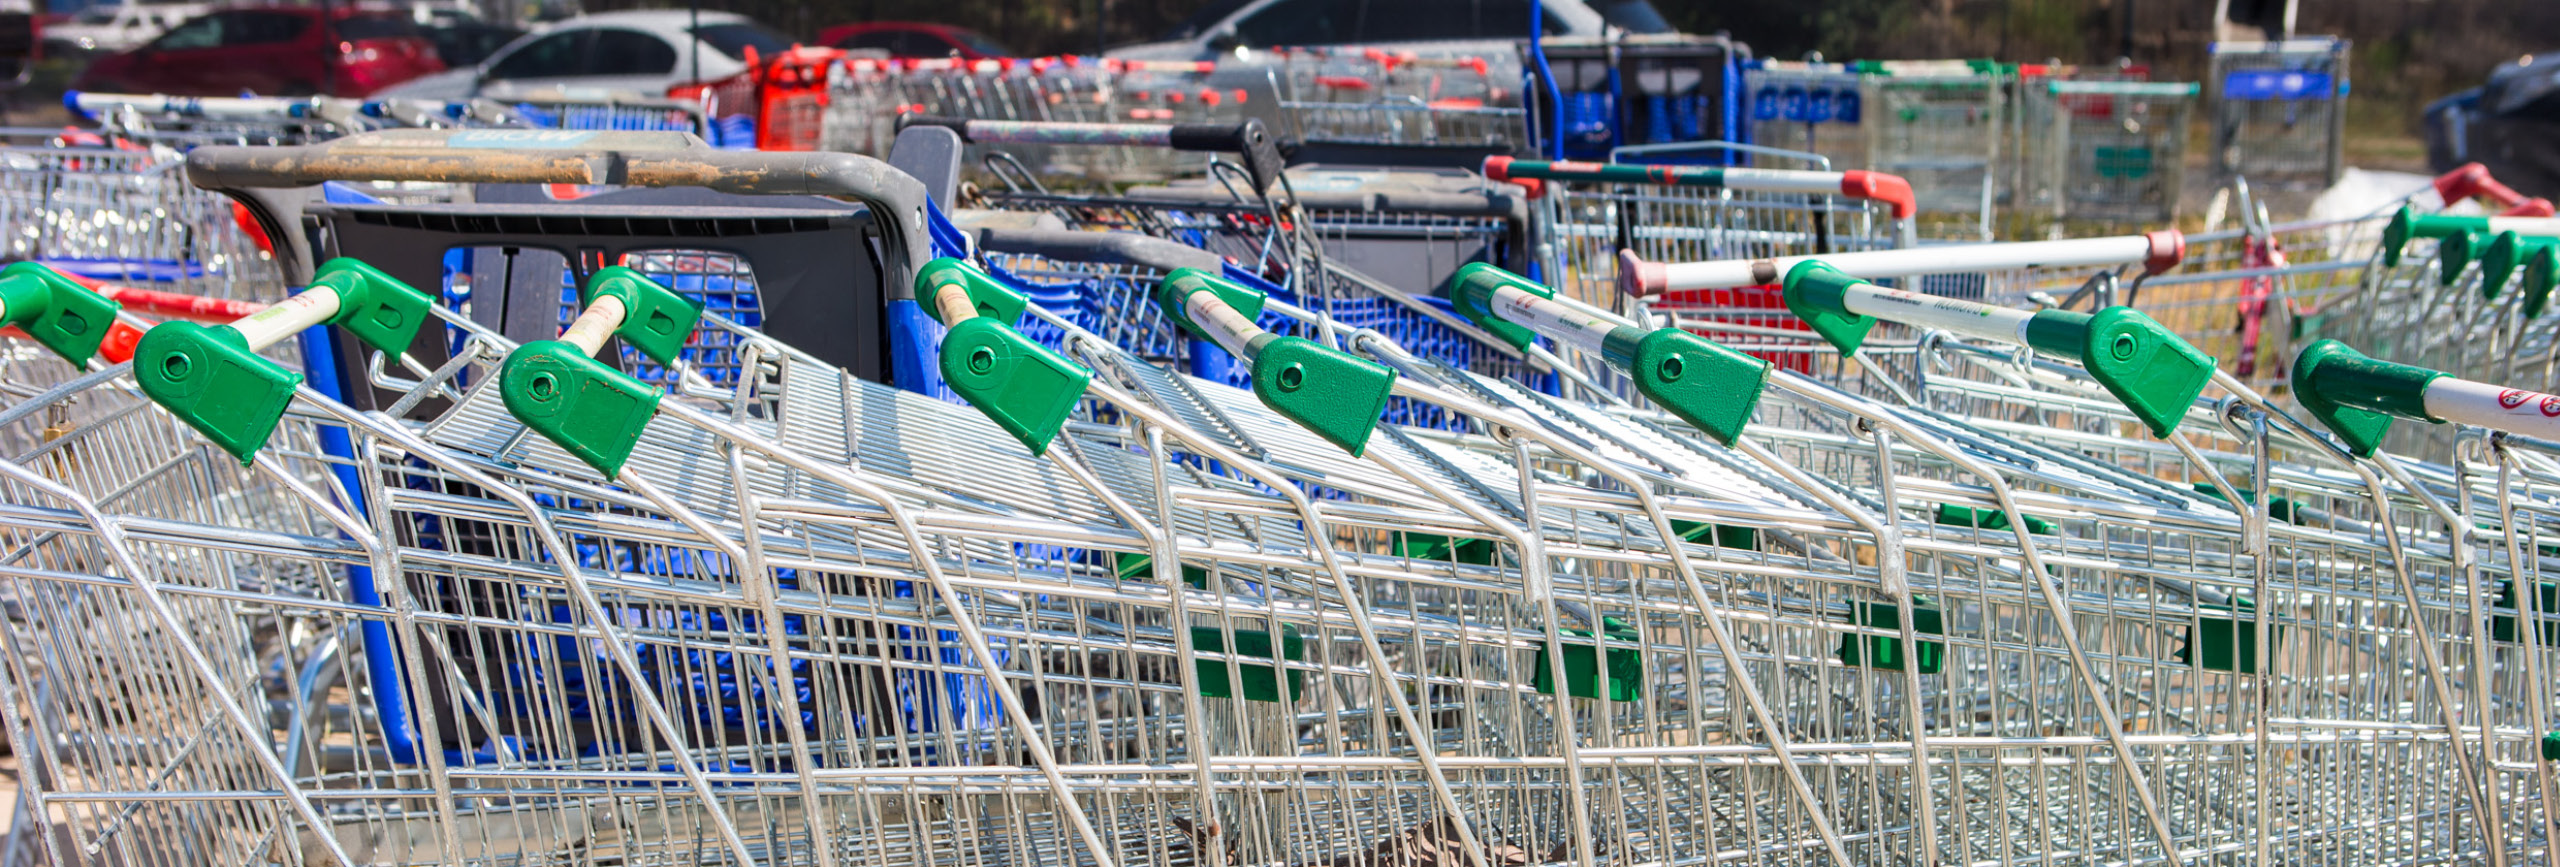 Nested shopping trolleys